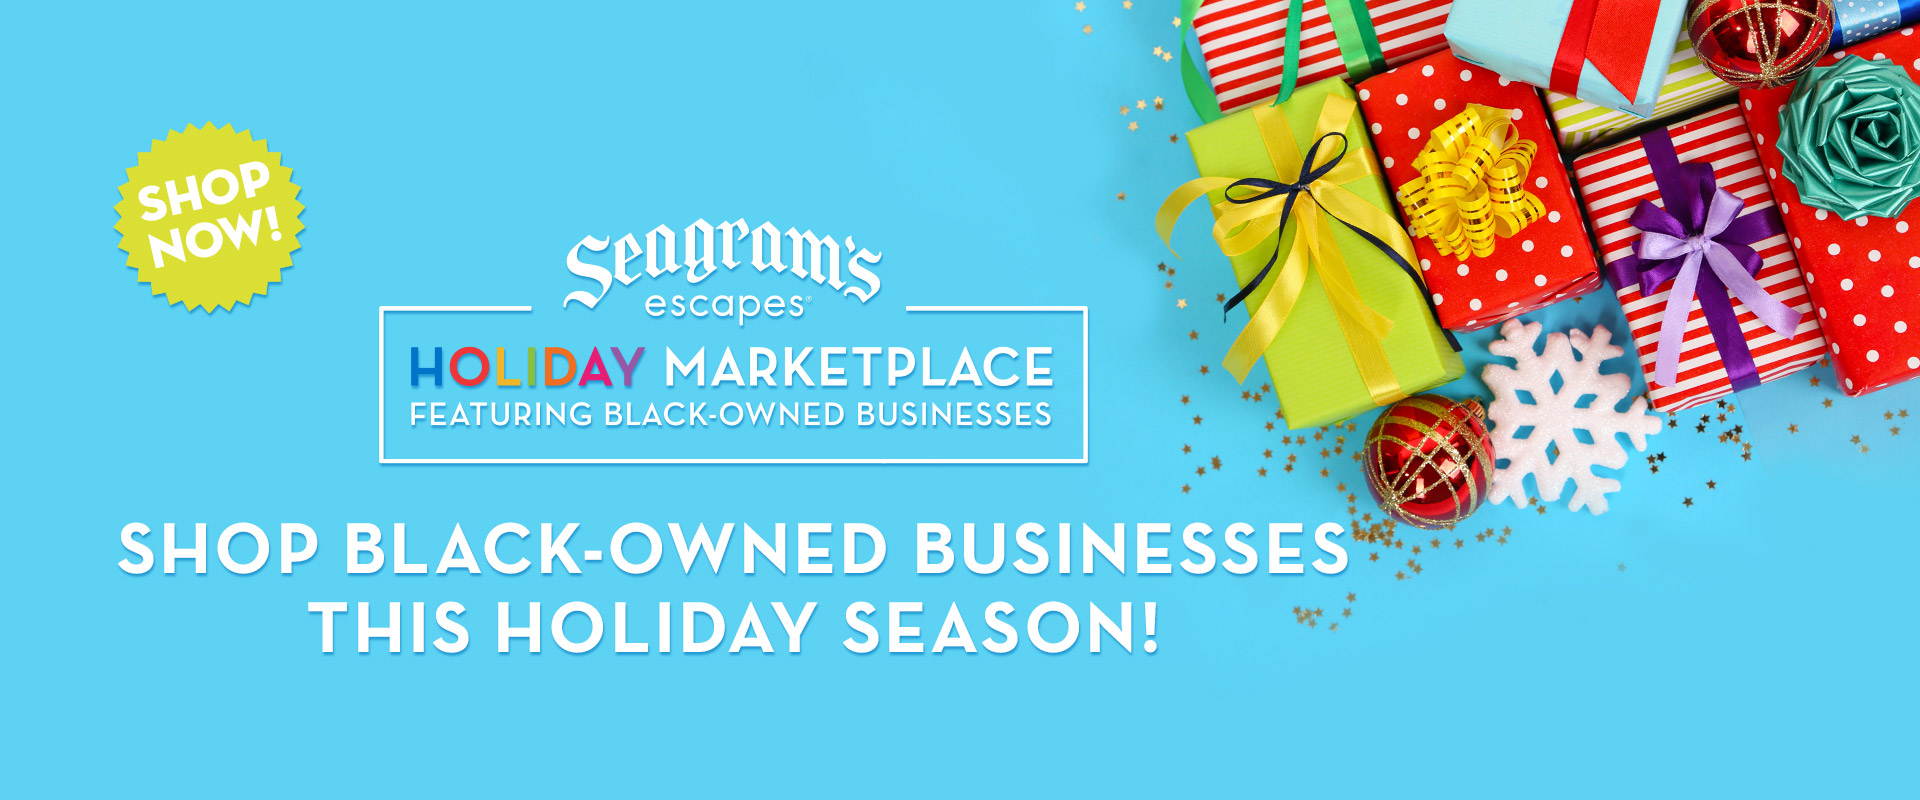 Looking for the perfect gift? Shop our Marketplace this holiday season and support Black-Owned Businesses!